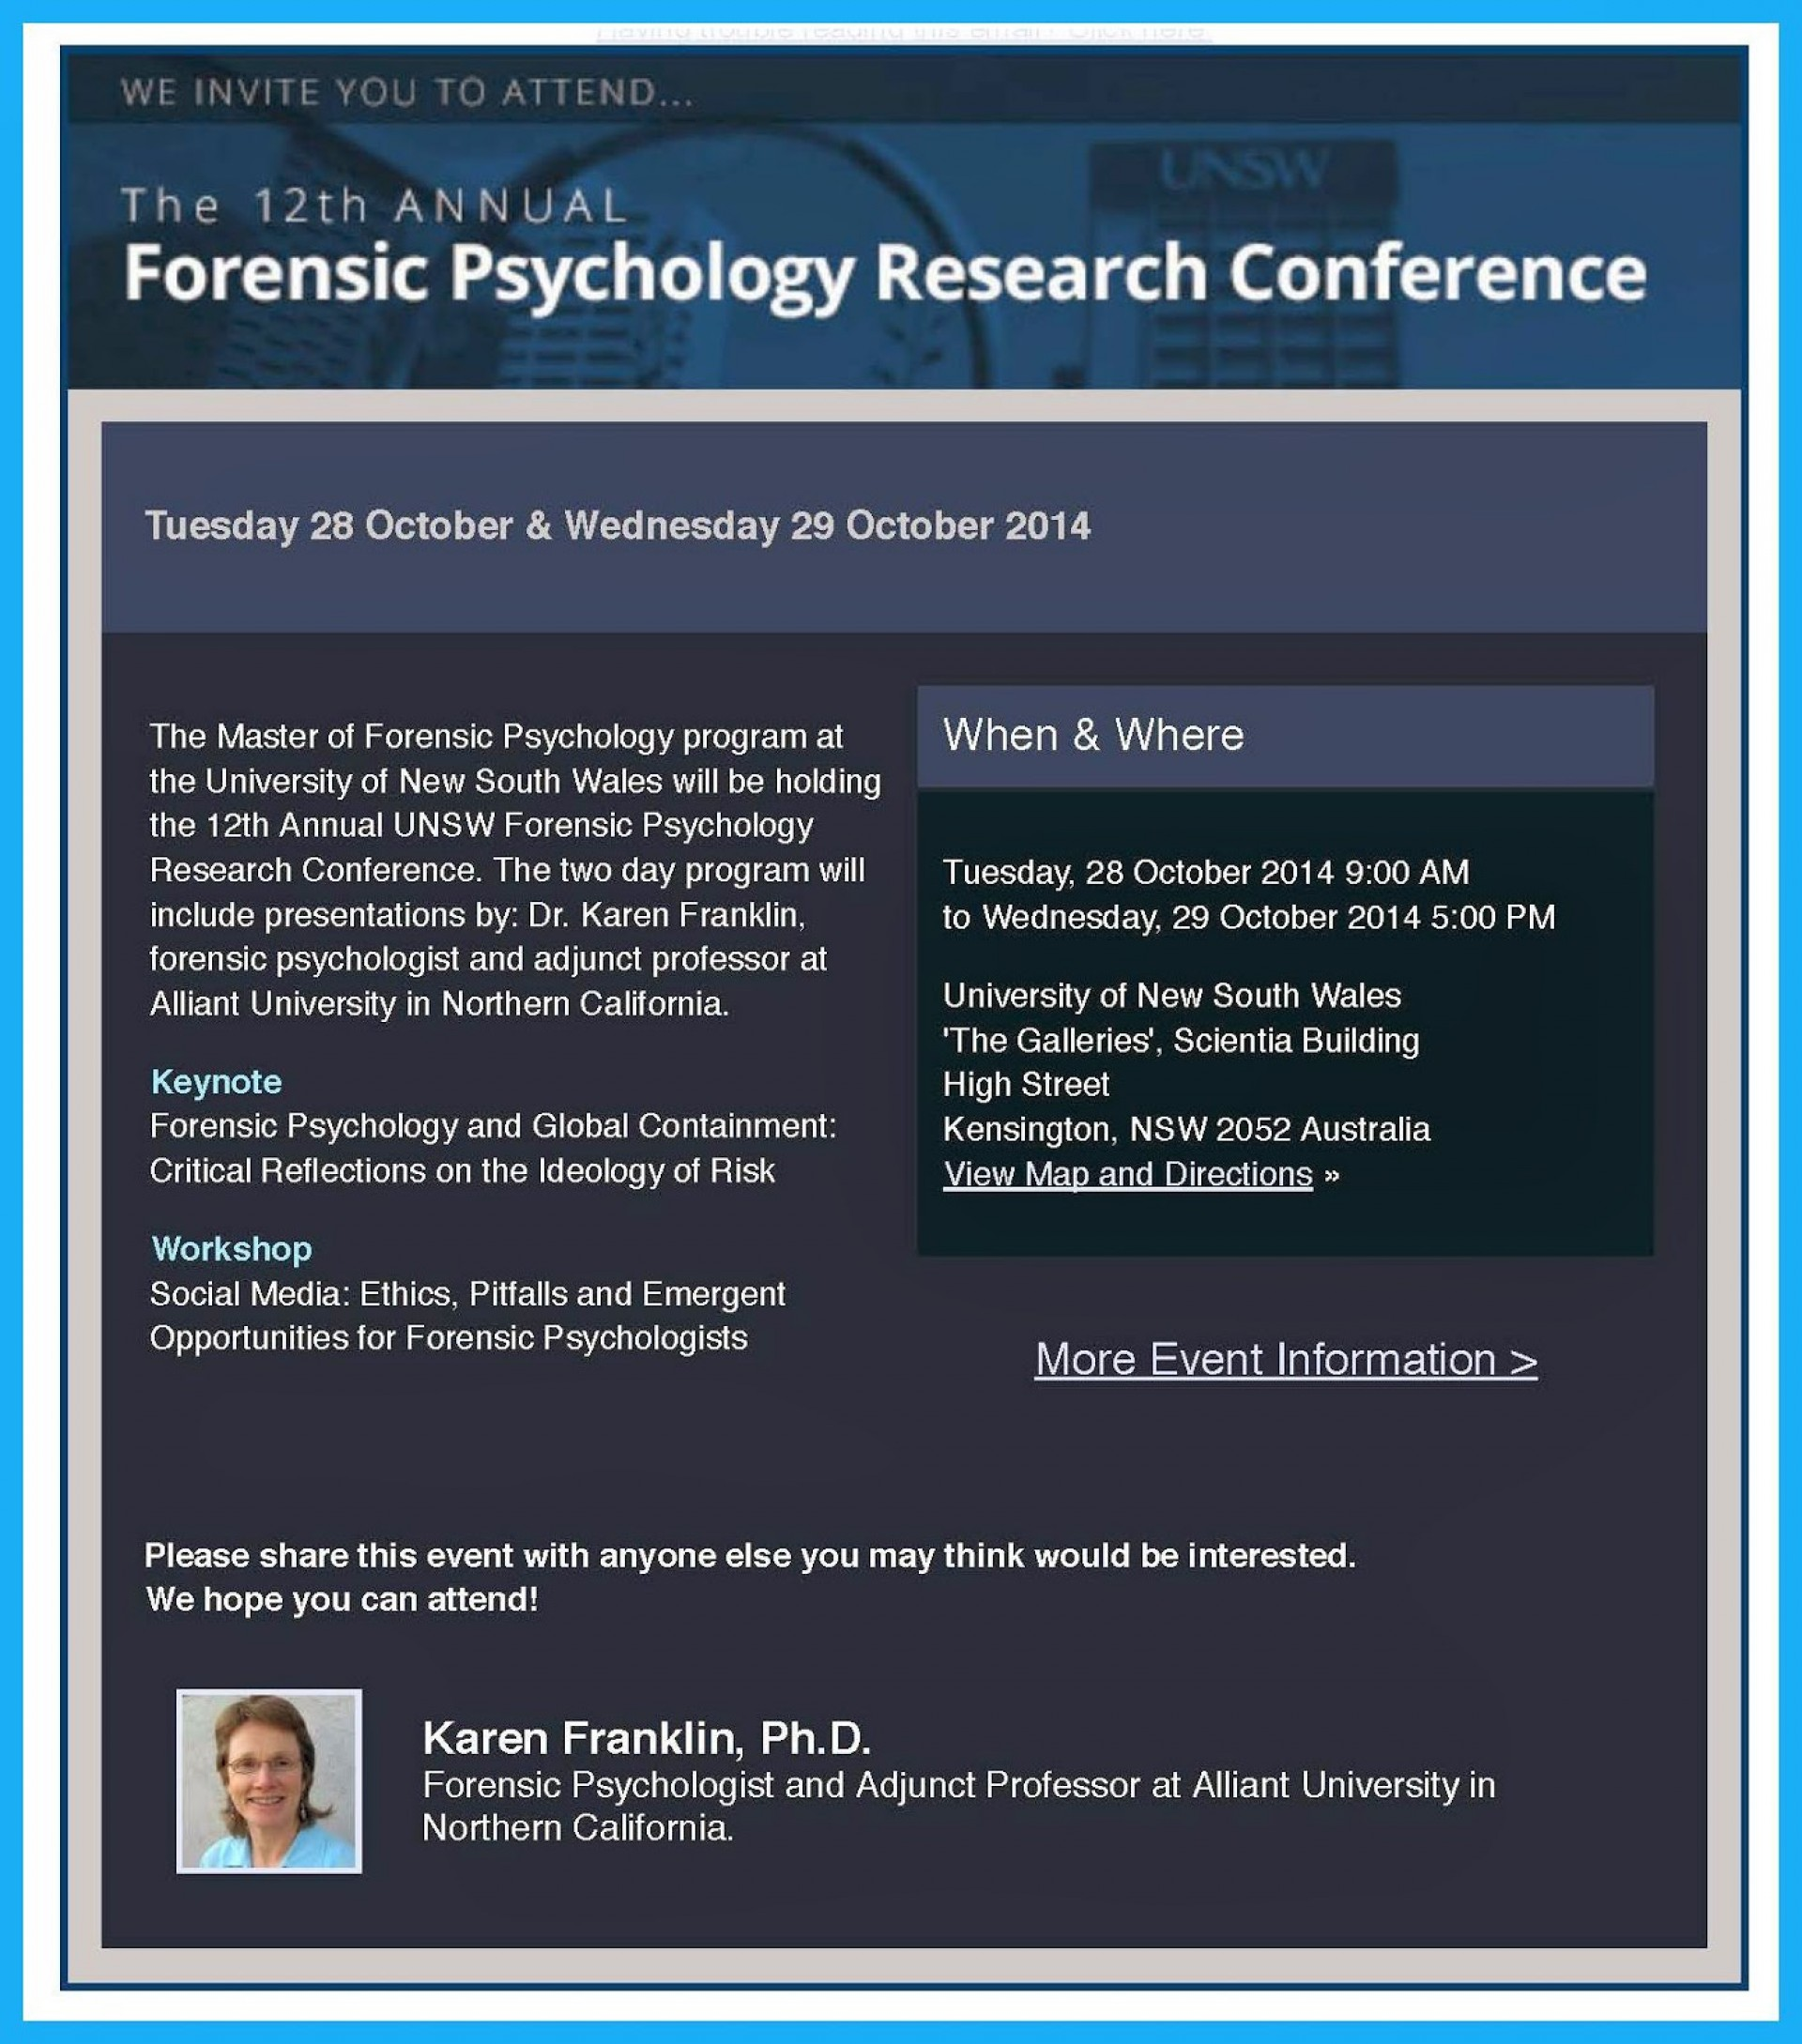 001 Forensicpsychologyresearchconference2014 Conferenceflier Essay Example Quirk Magnificent College 1920